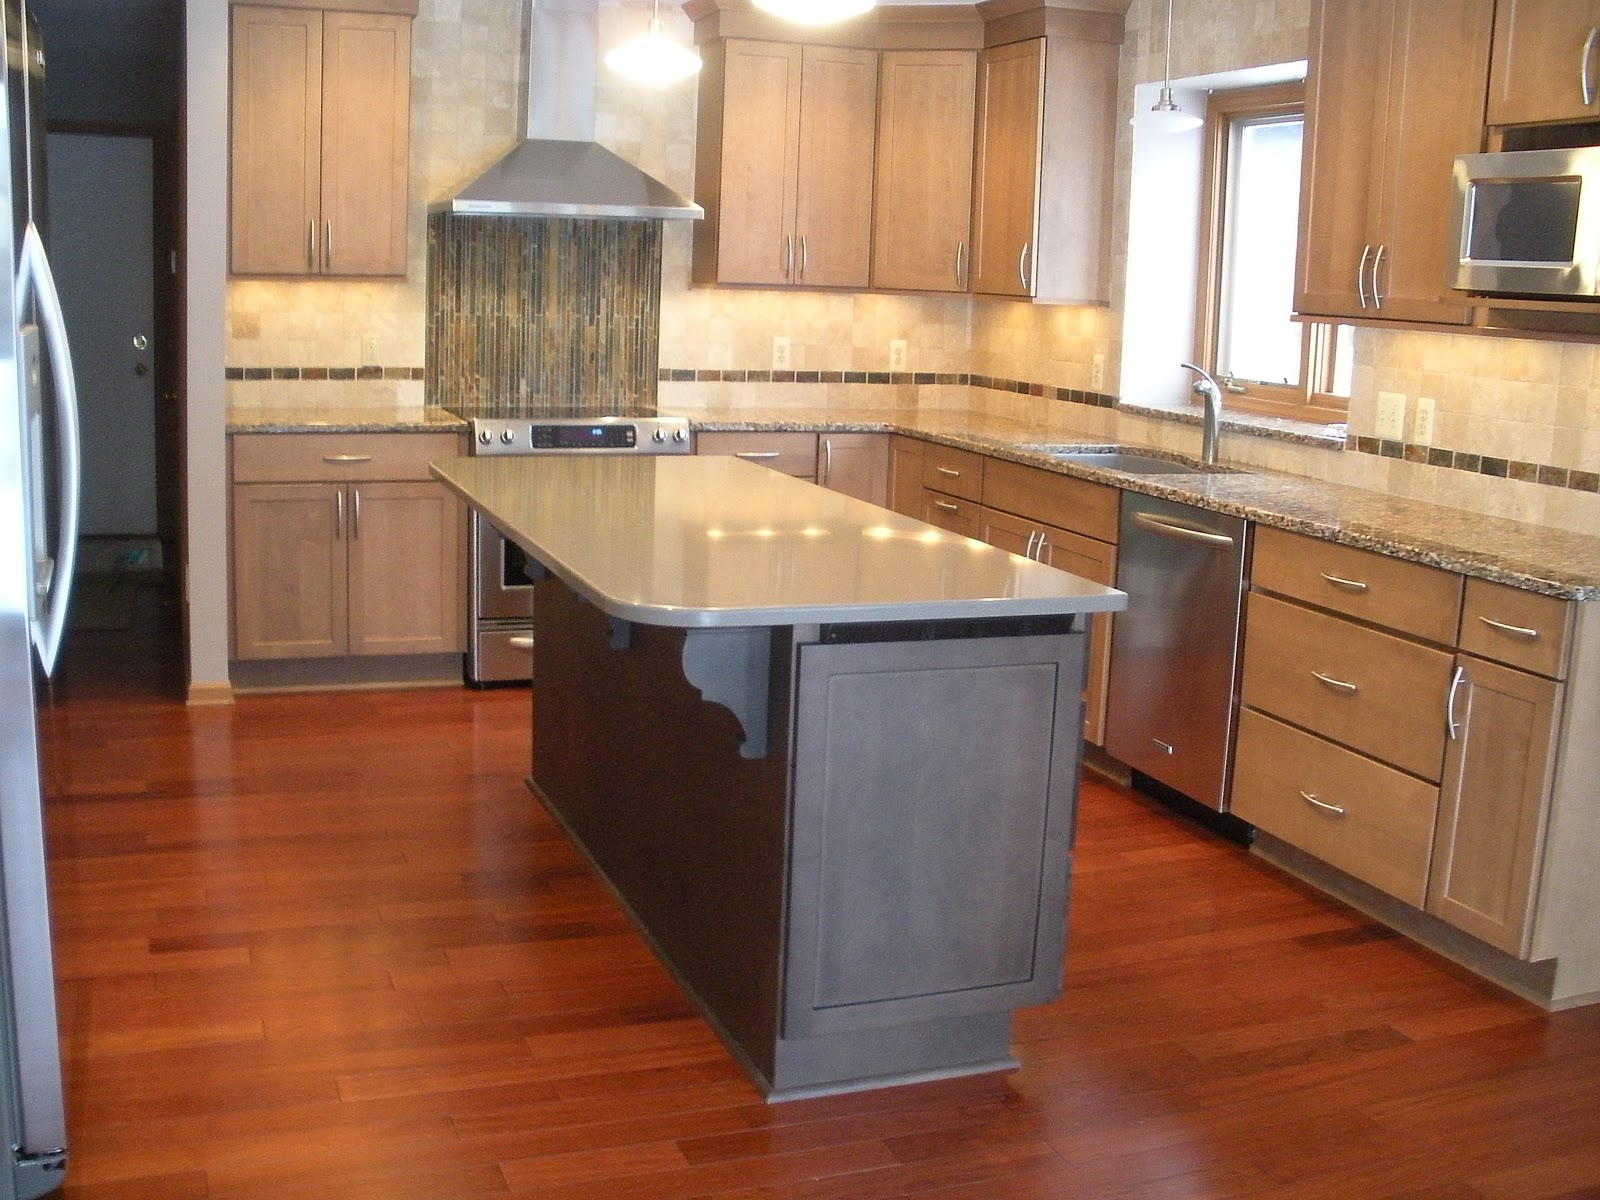 Shaker Style Kitchen Borchert Building Blog The History Behind The Popular Shaker